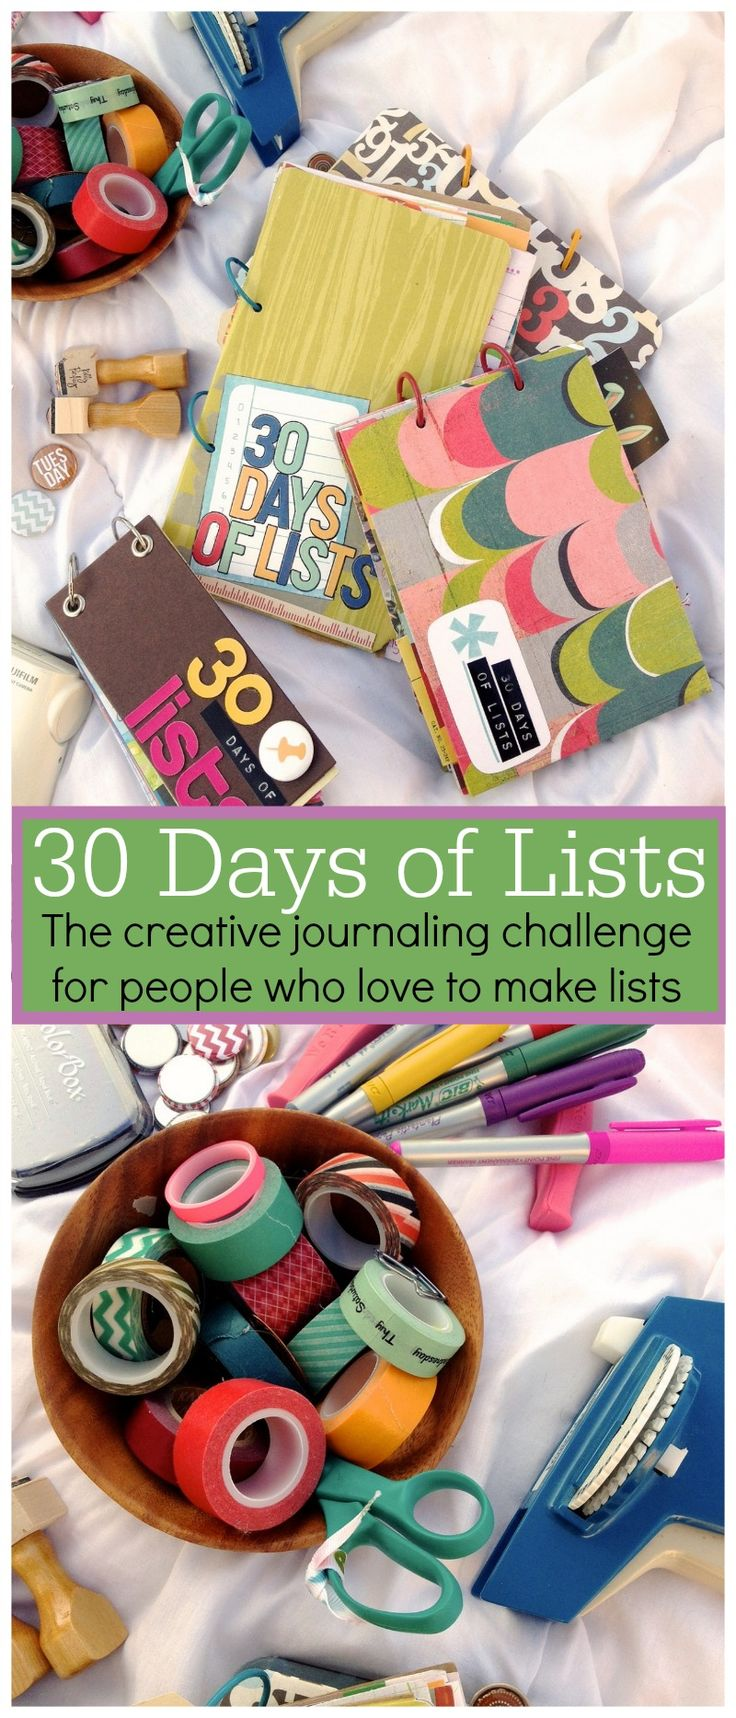 30 Days of Lists -- the semi-annual creative journaling challenge for people who LOVE to make lists returns this September 2014! #30Lists